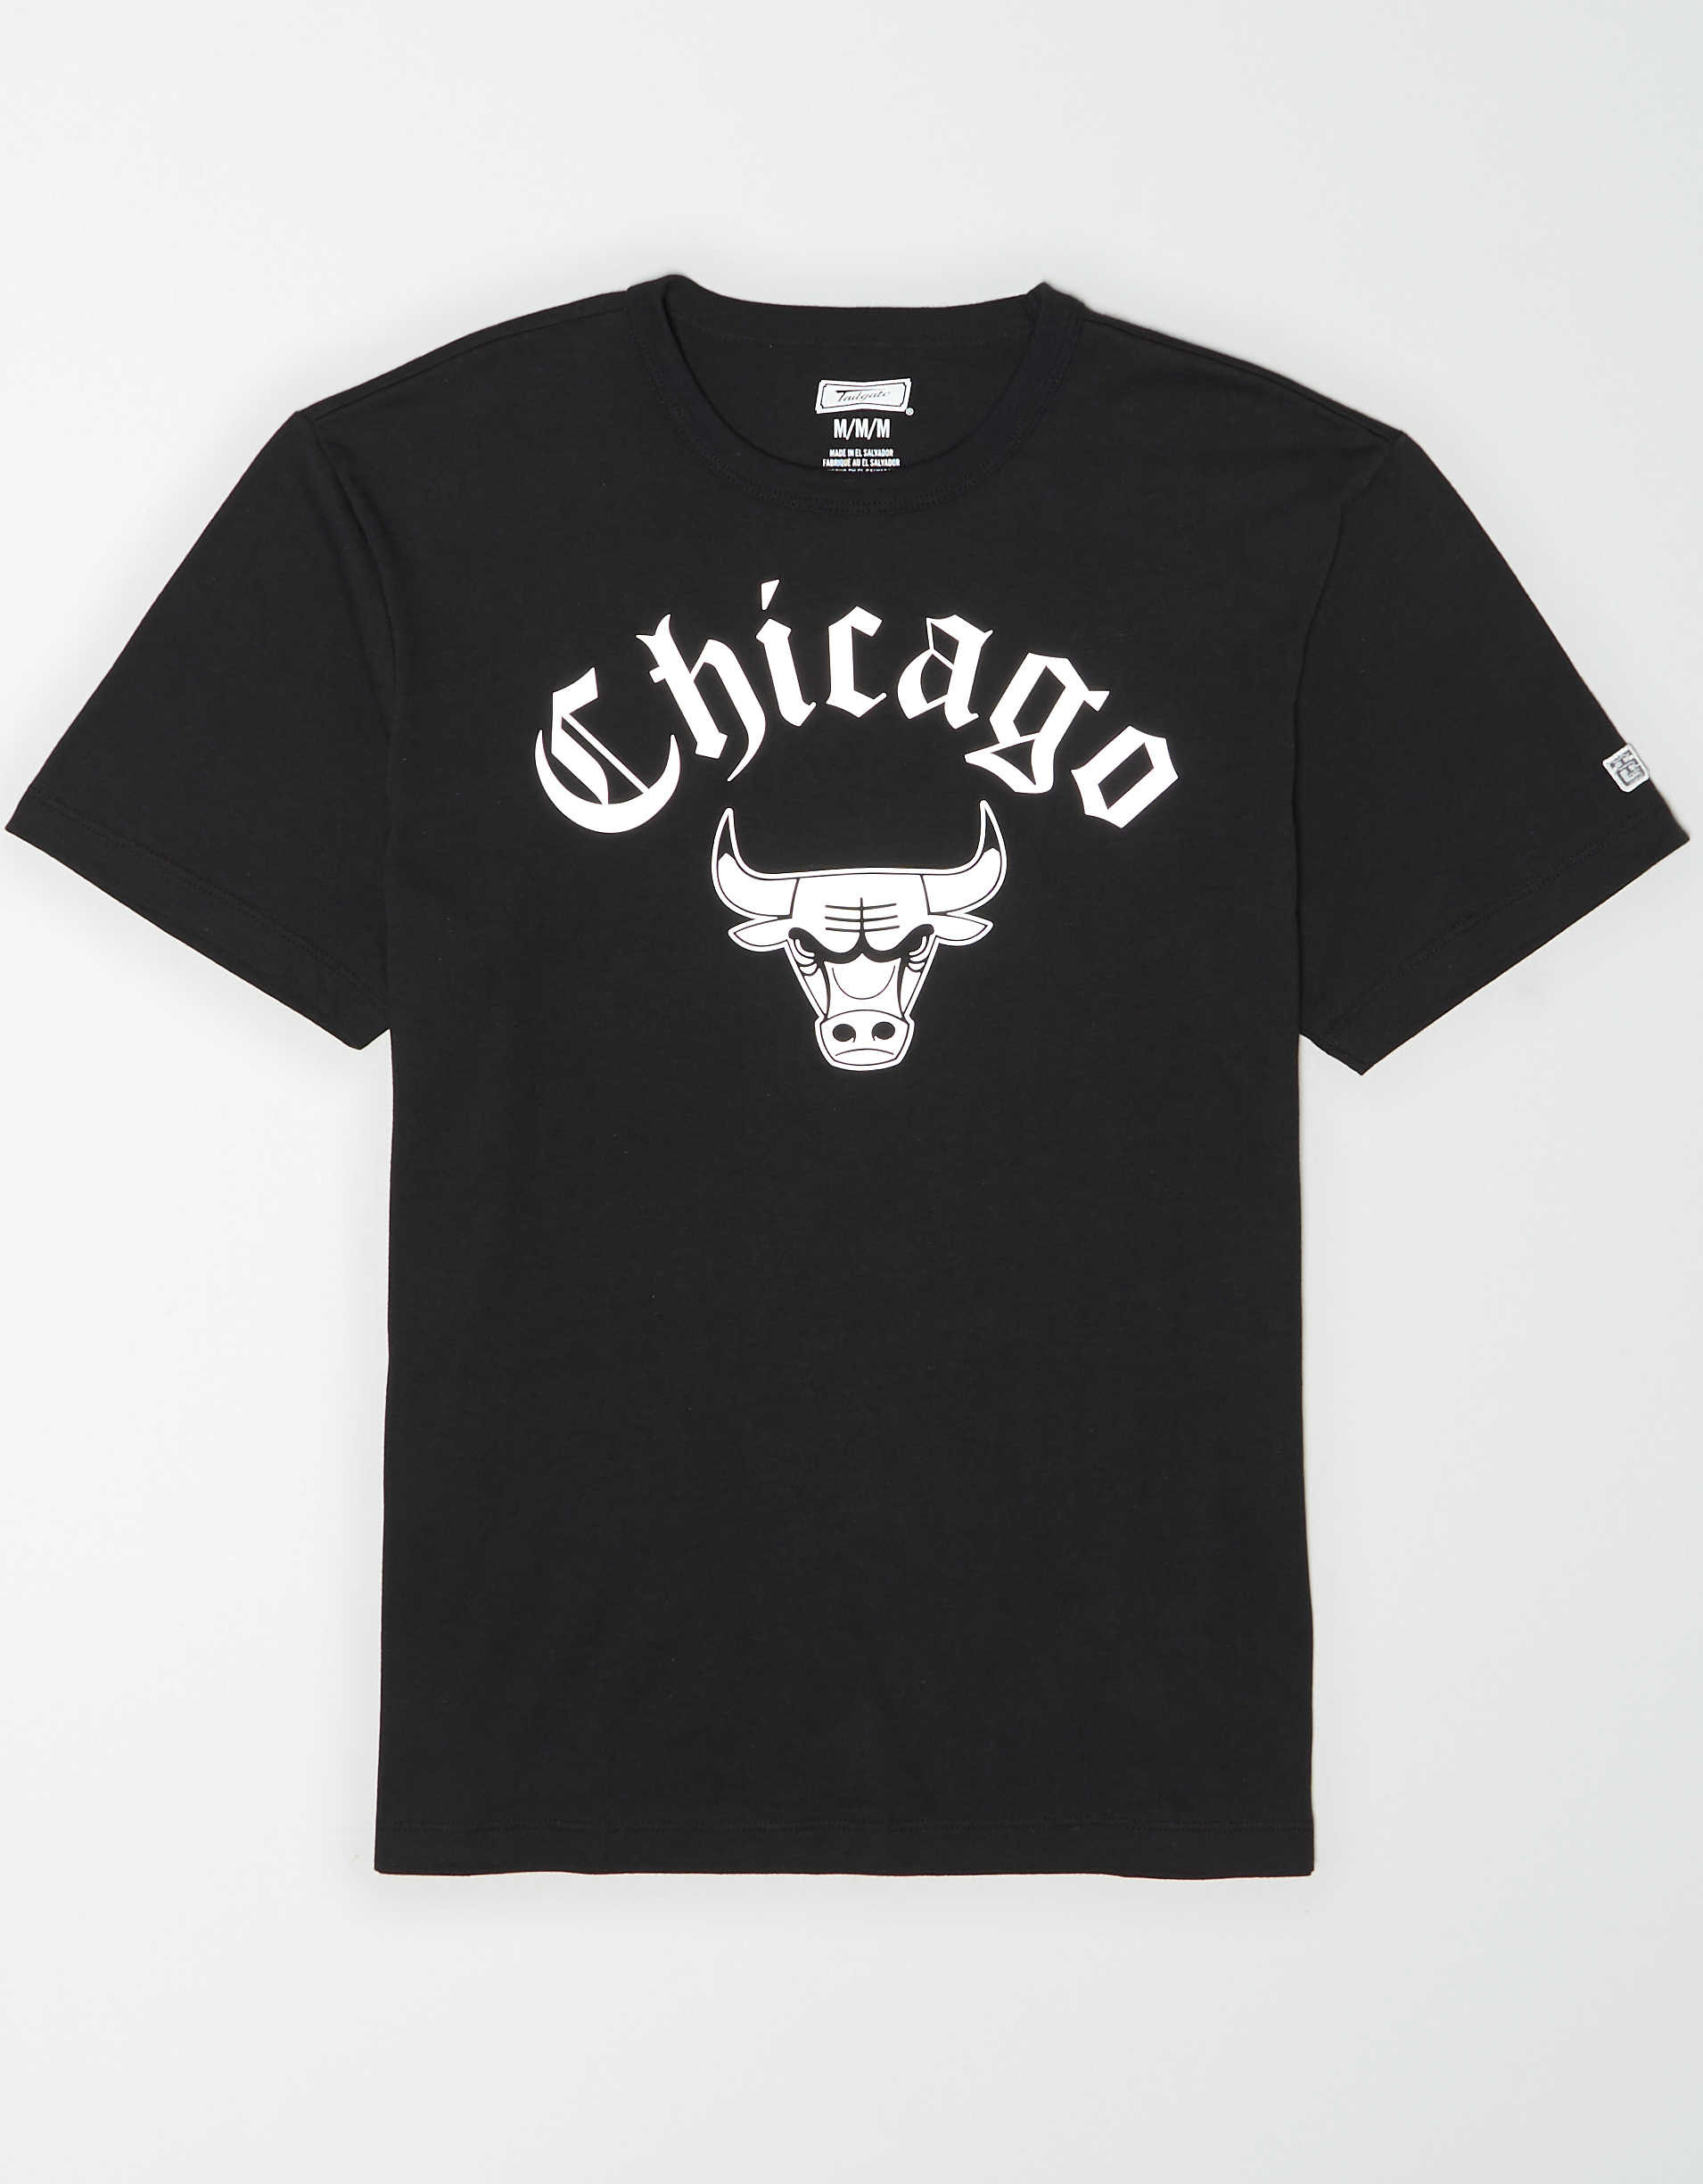 Black Chicago Bulls shirt